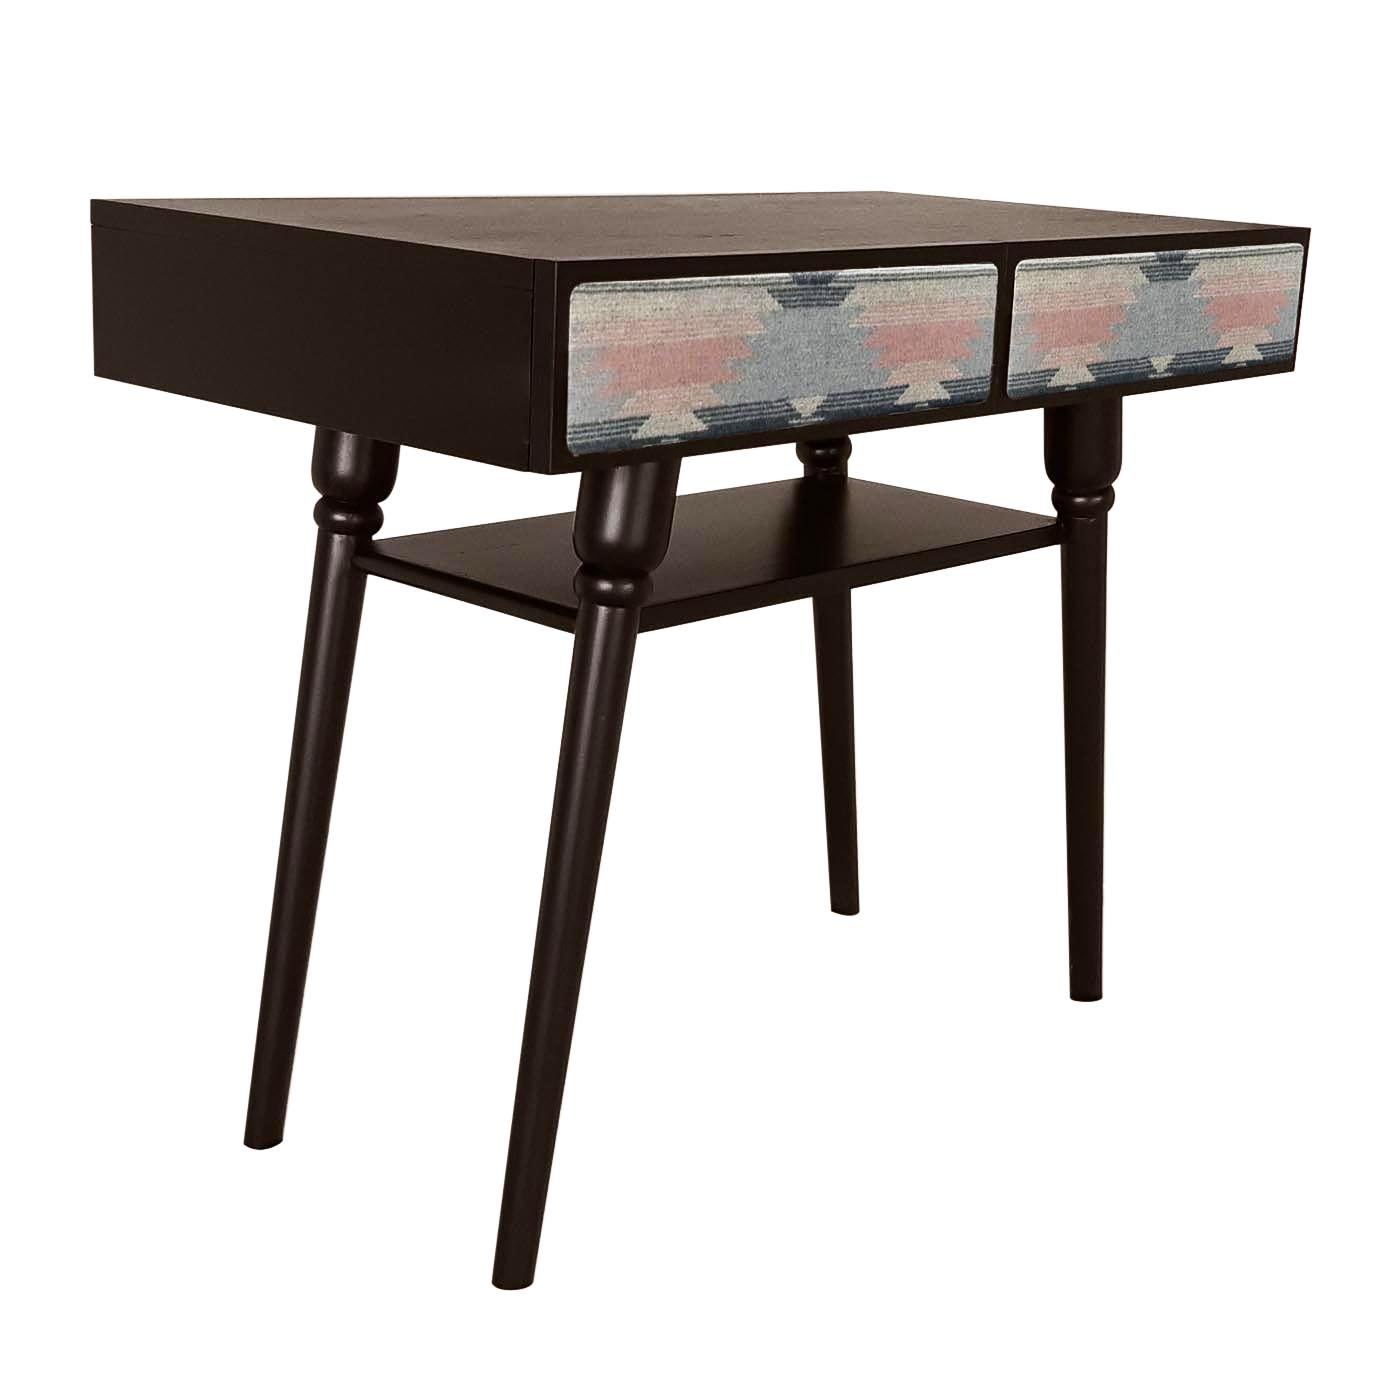 Nador Pink Patterned Dark Console Table